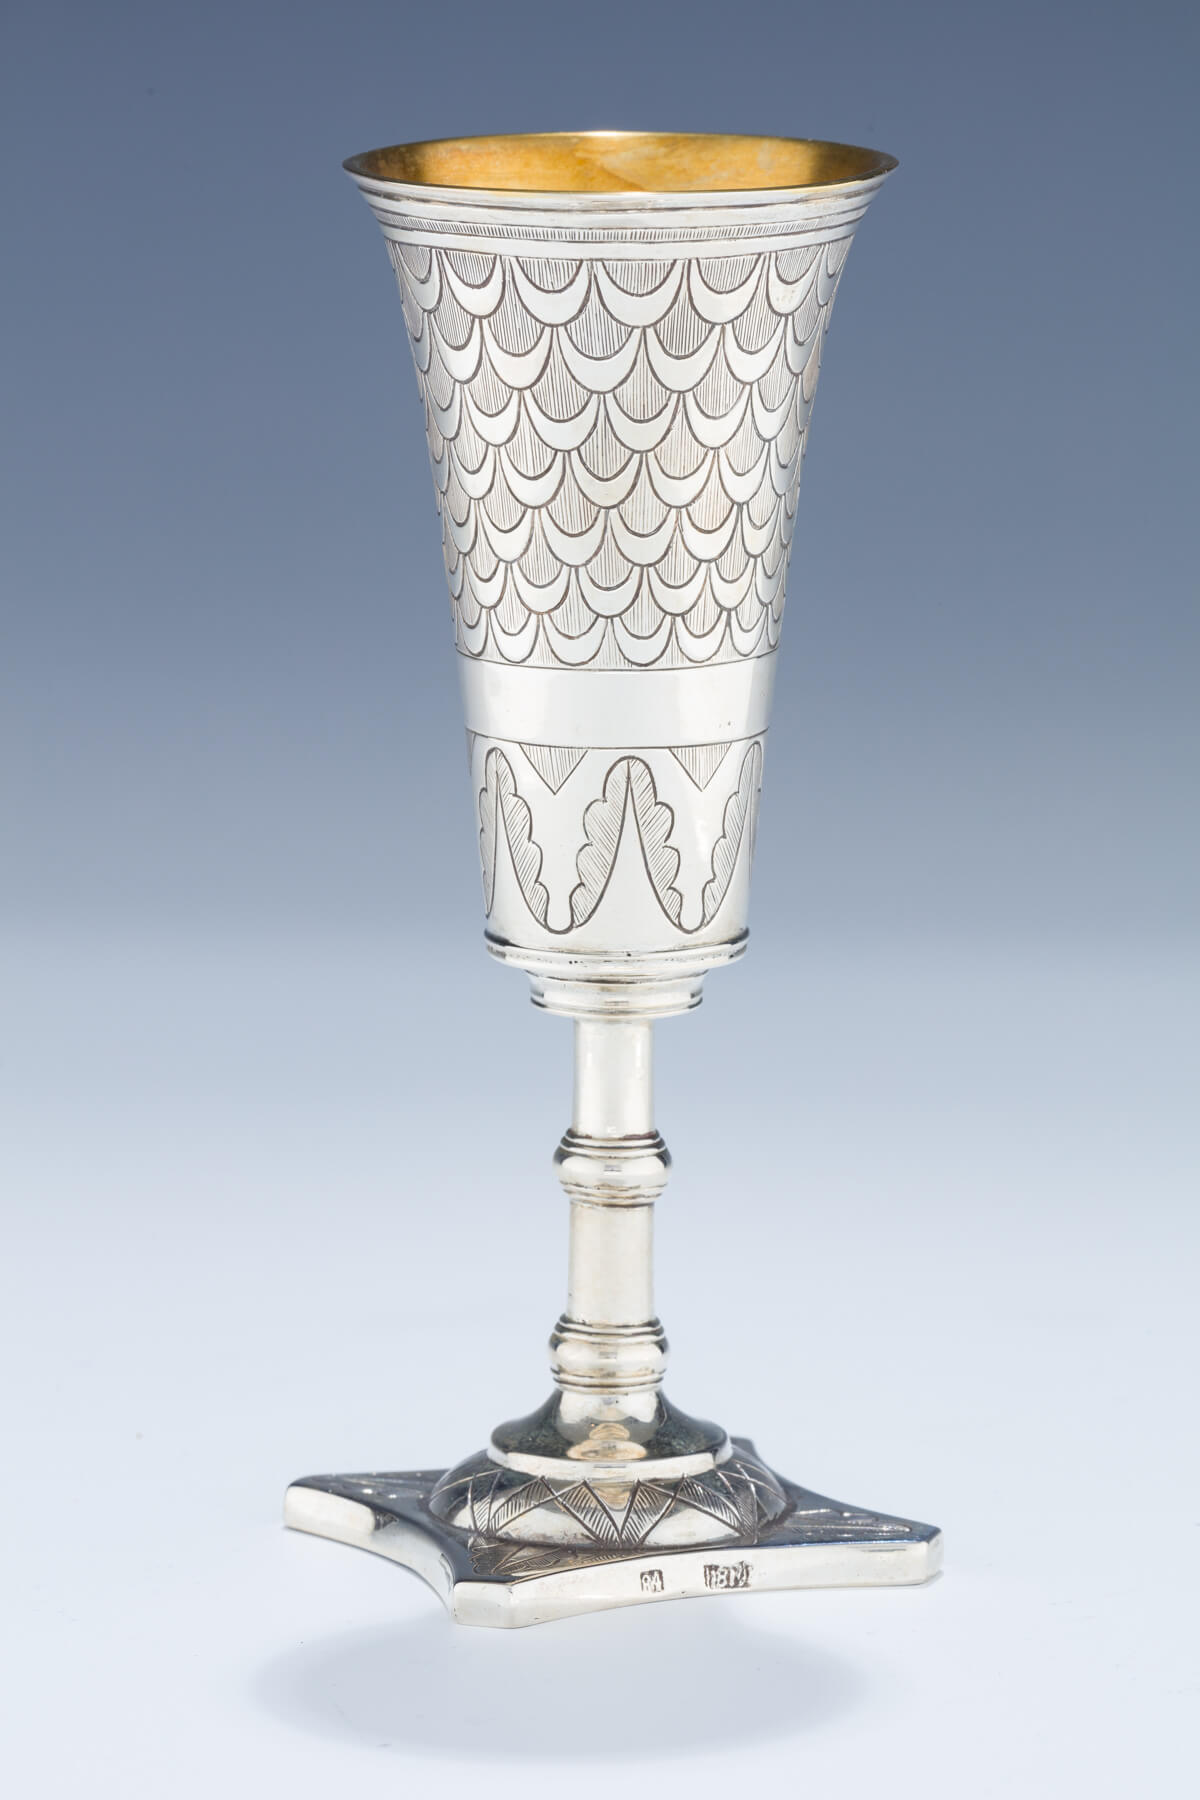 012. A Large Silver Kiddush Goblet